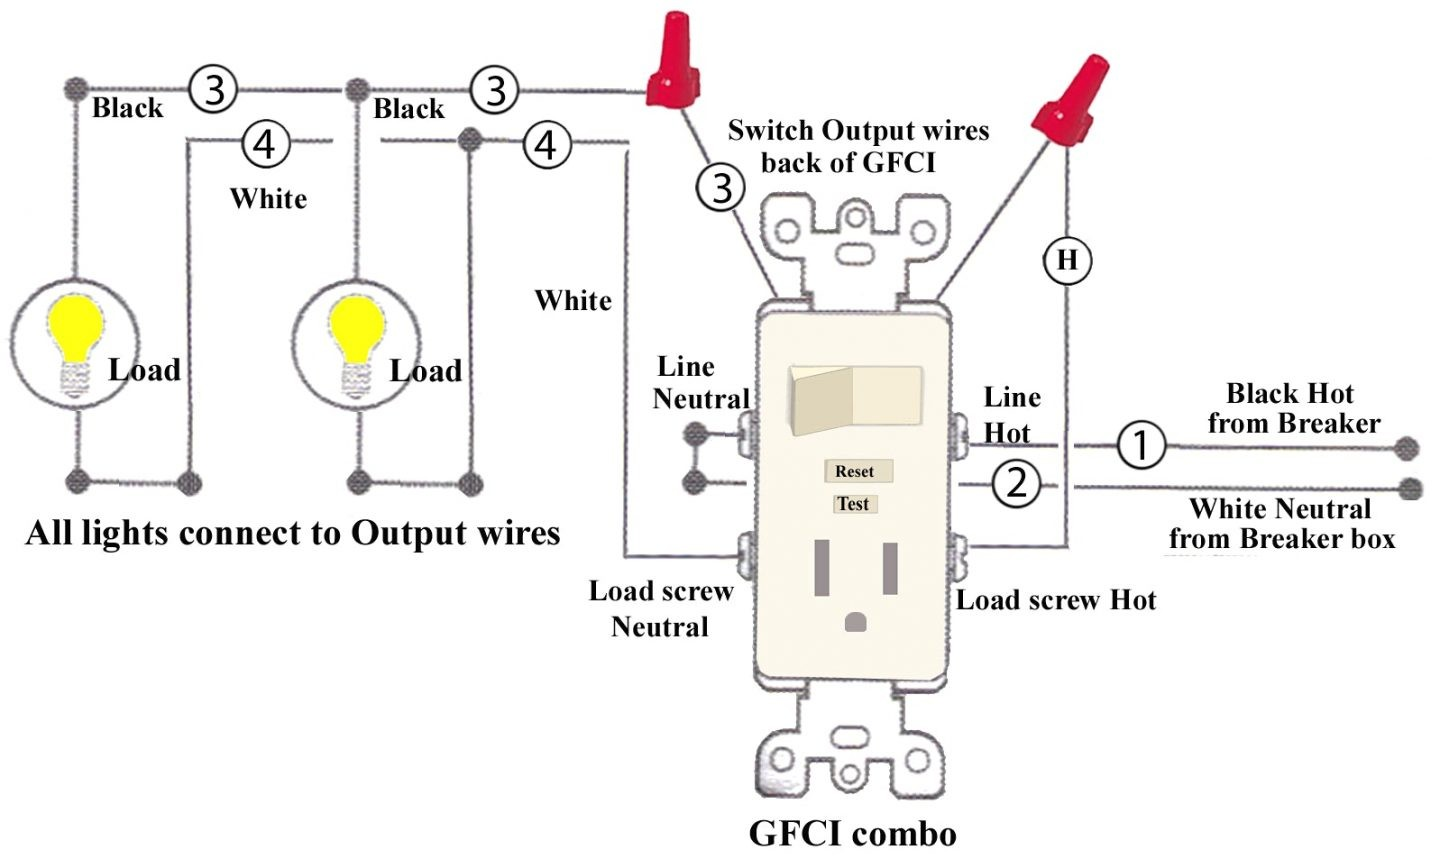 22750E Wiring Diagrams For Leviton Bination Switch Gfci | Wiring LibraryWiring Library